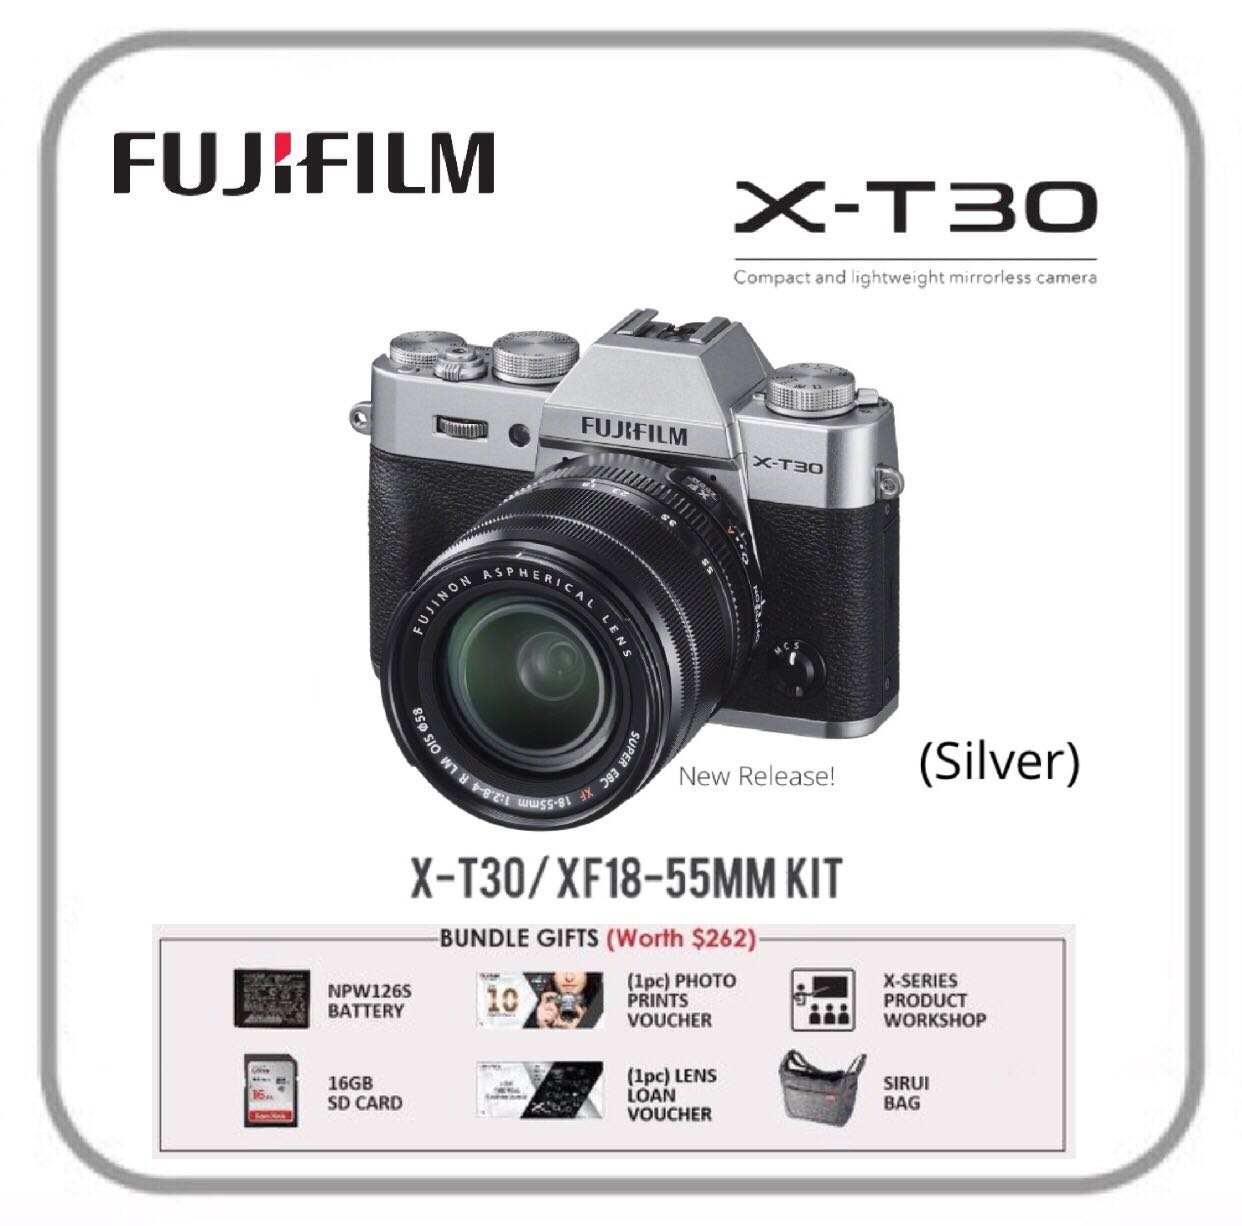 FUJIFILM X-T30 with 18-55mm Lens (Silver), Photography